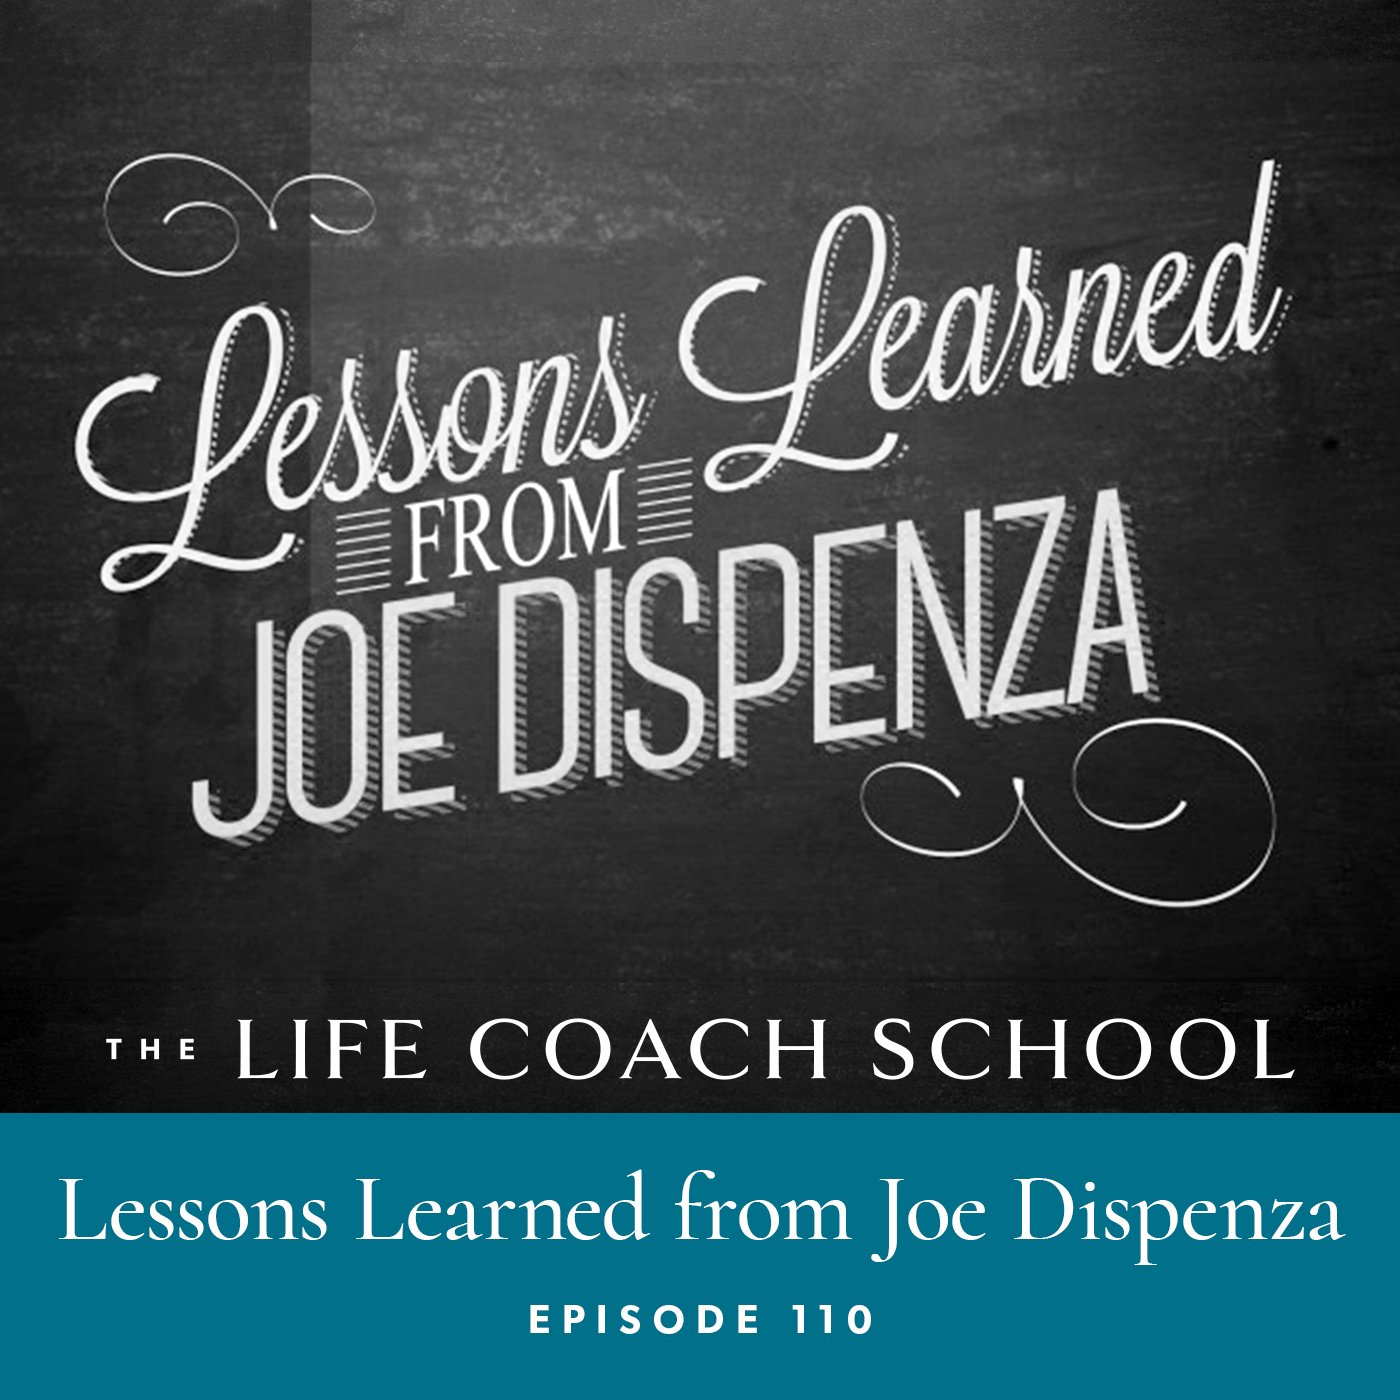 The Life Coach School Podcast with Brooke Castillo | Episode 110 | Lessons Learned from Joe Dispenza